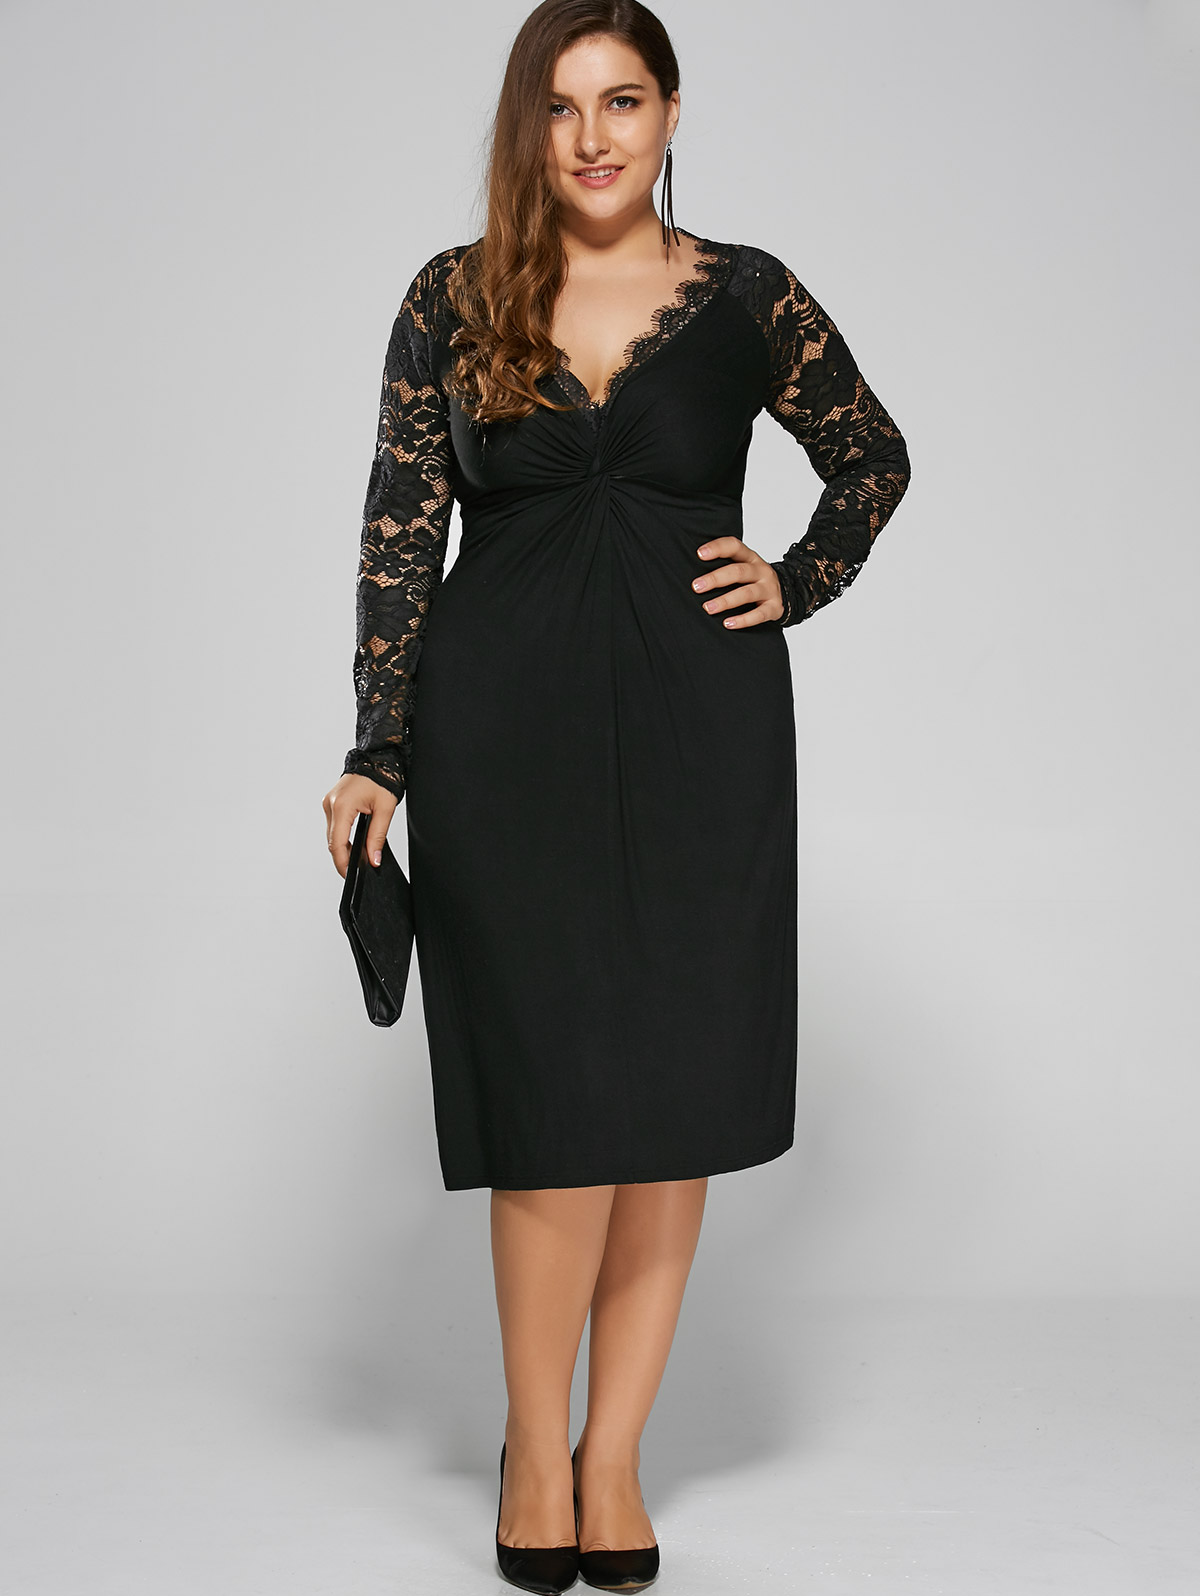 962b21b2073 Gamiss Women Black Holiday Formal Party Bodycon Sexy Dress Plus Size Twist  Front Formal Dress With Lace Sleeves Big Size XL-4XL